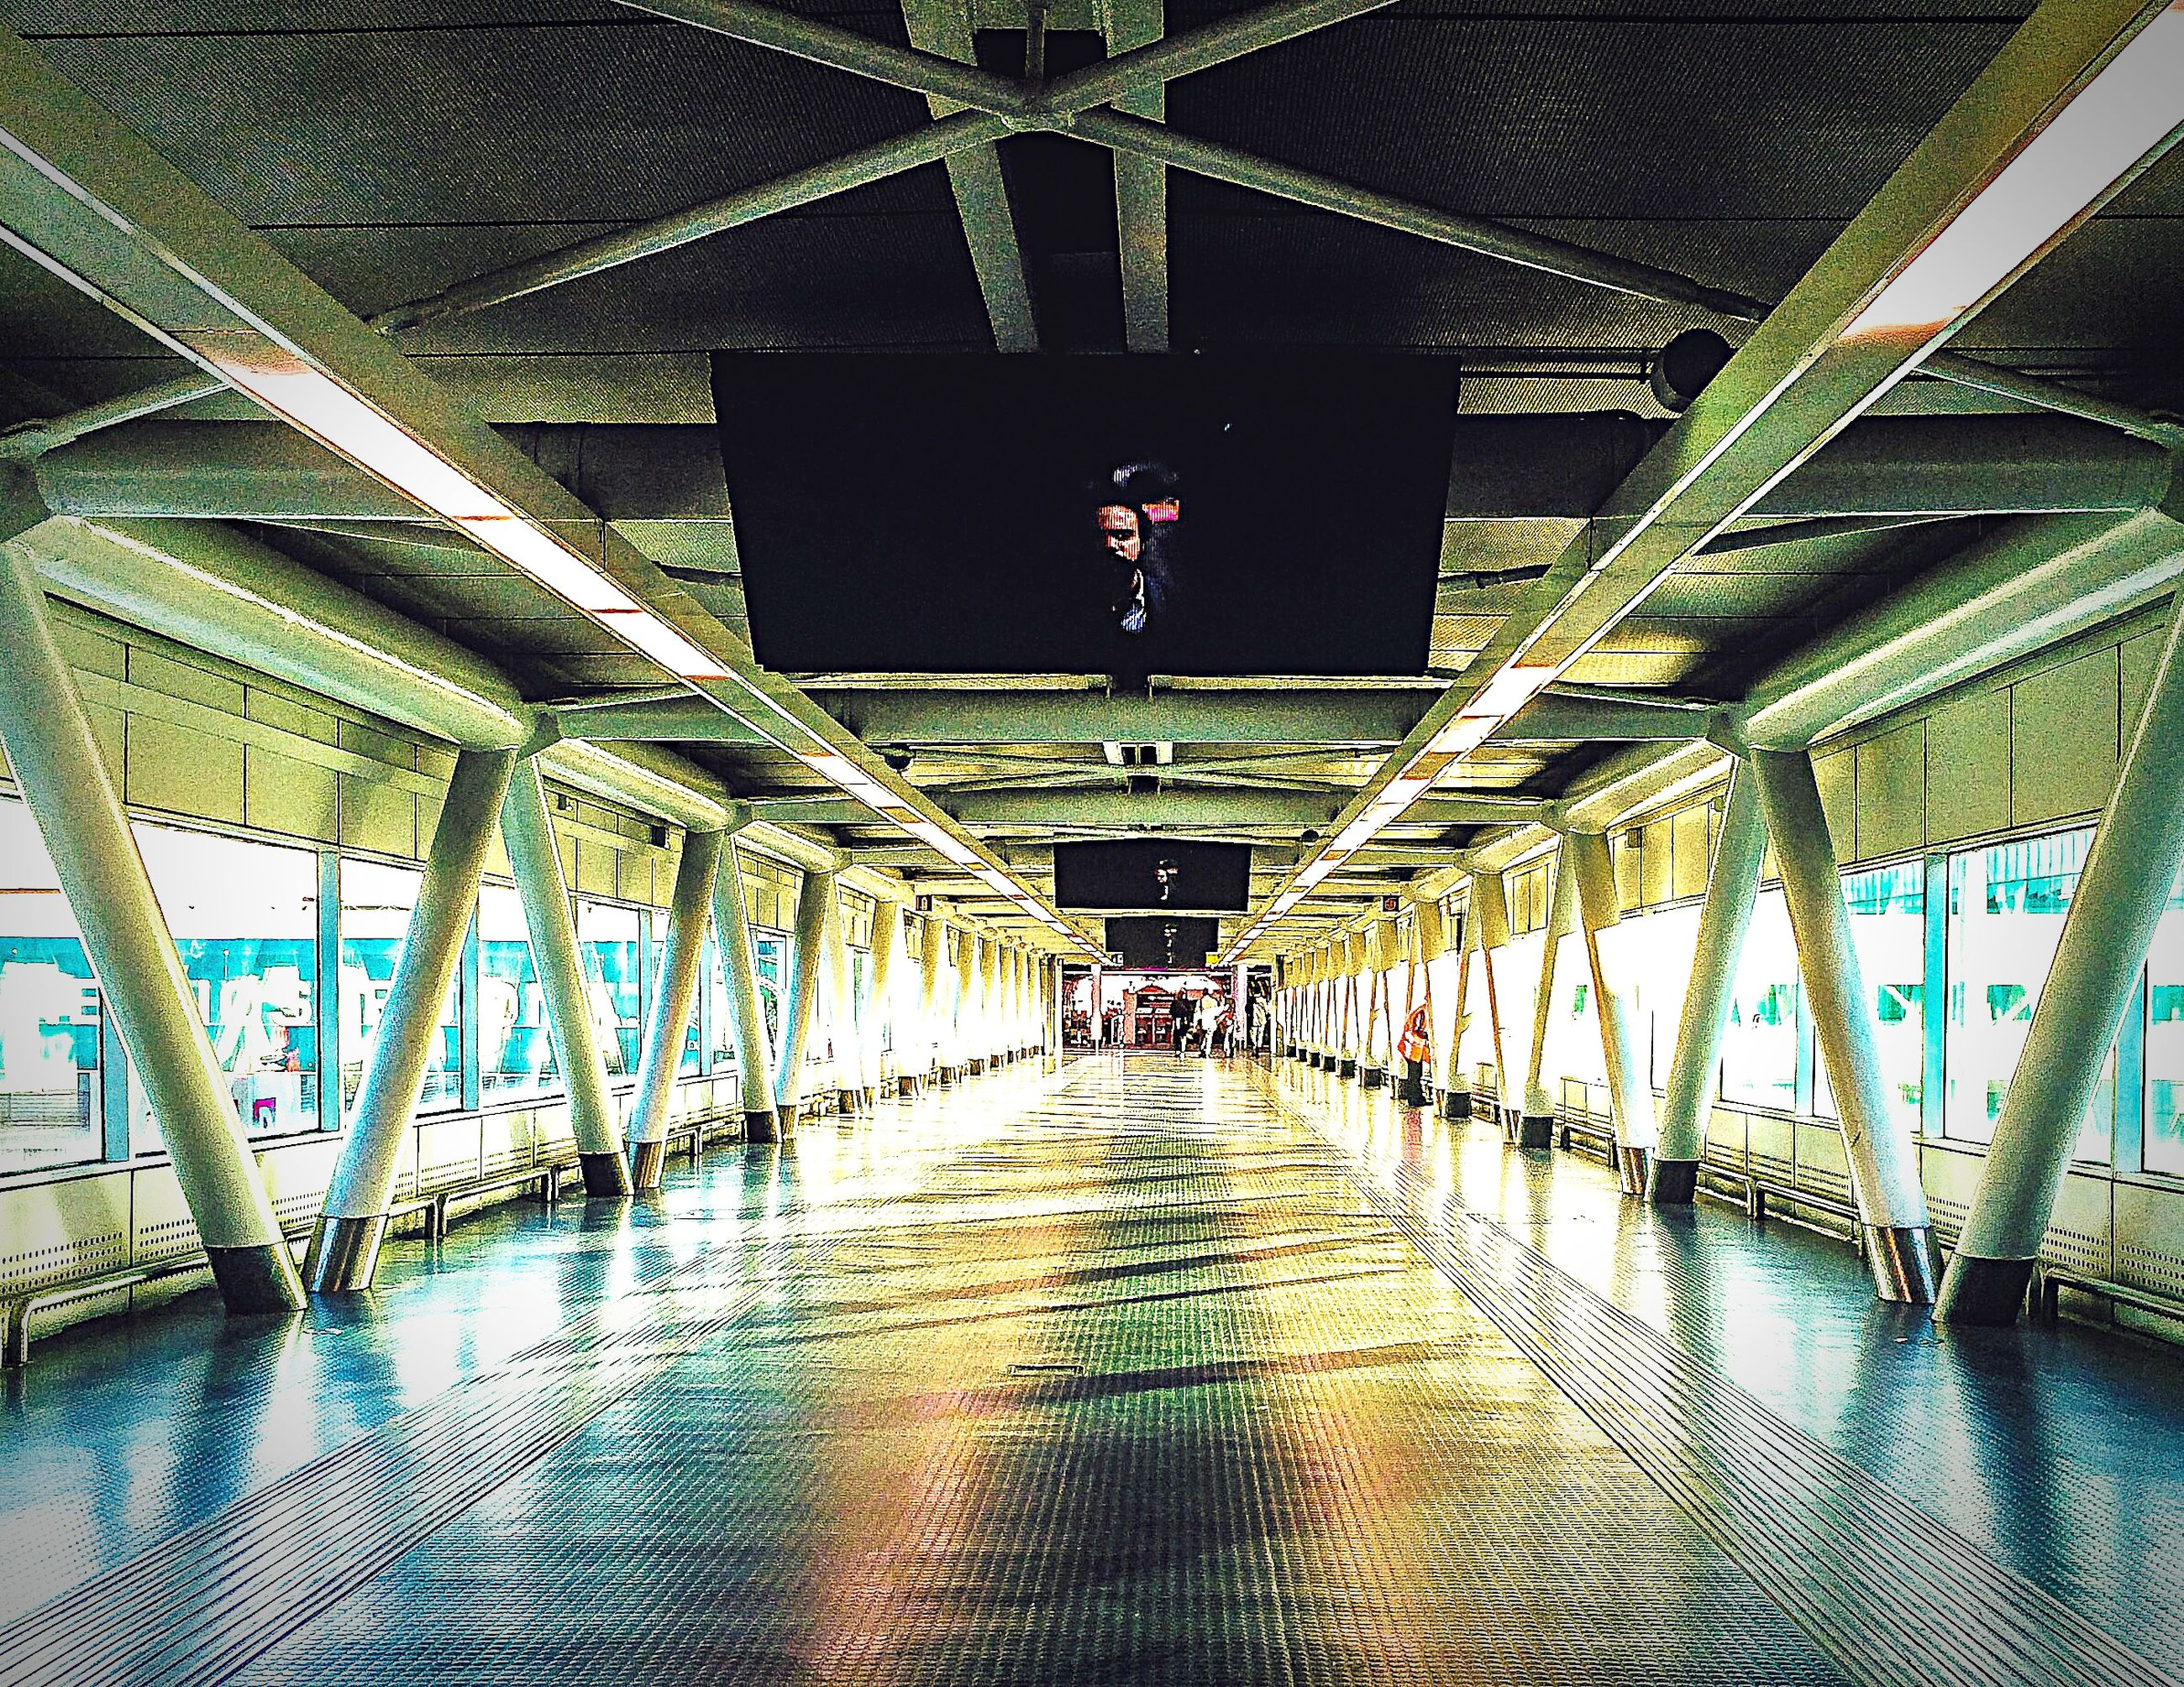 architecture, built structure, indoors, the way forward, diminishing perspective, ceiling, connection, metal, bridge - man made structure, vanishing point, engineering, walkway, illuminated, footbridge, pattern, lighting equipment, architectural column, empty, long, metallic